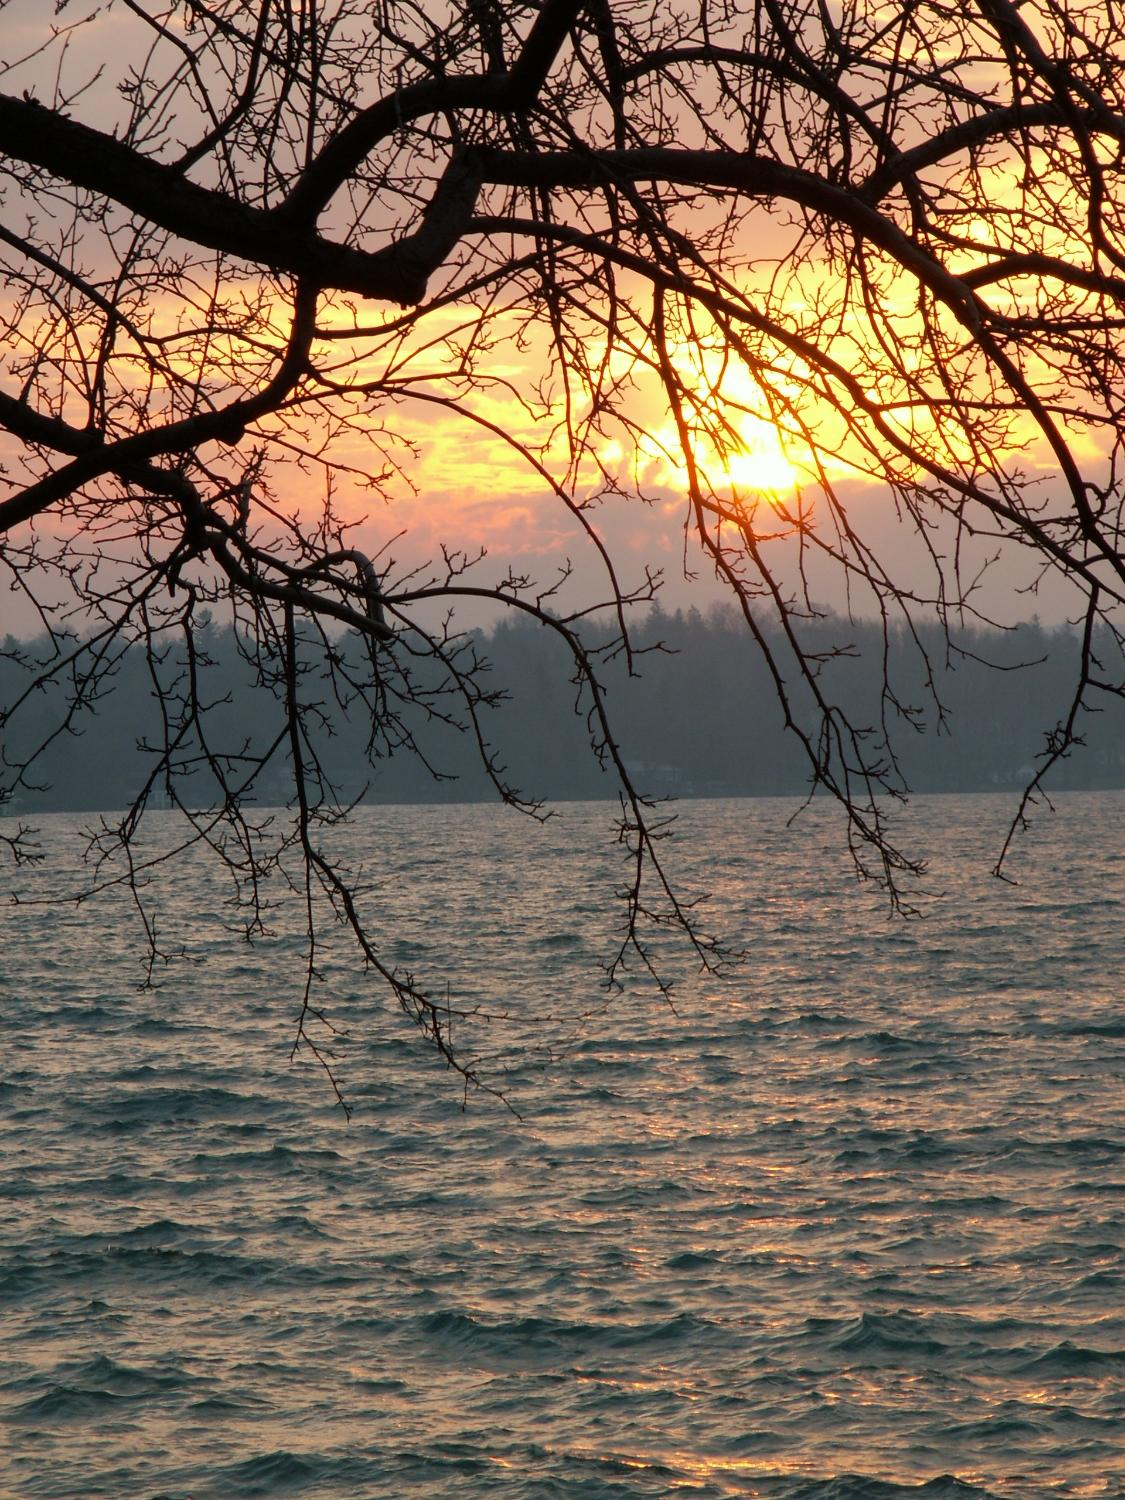 Skaneateles Lake (Finger lakes NY) at sunrise